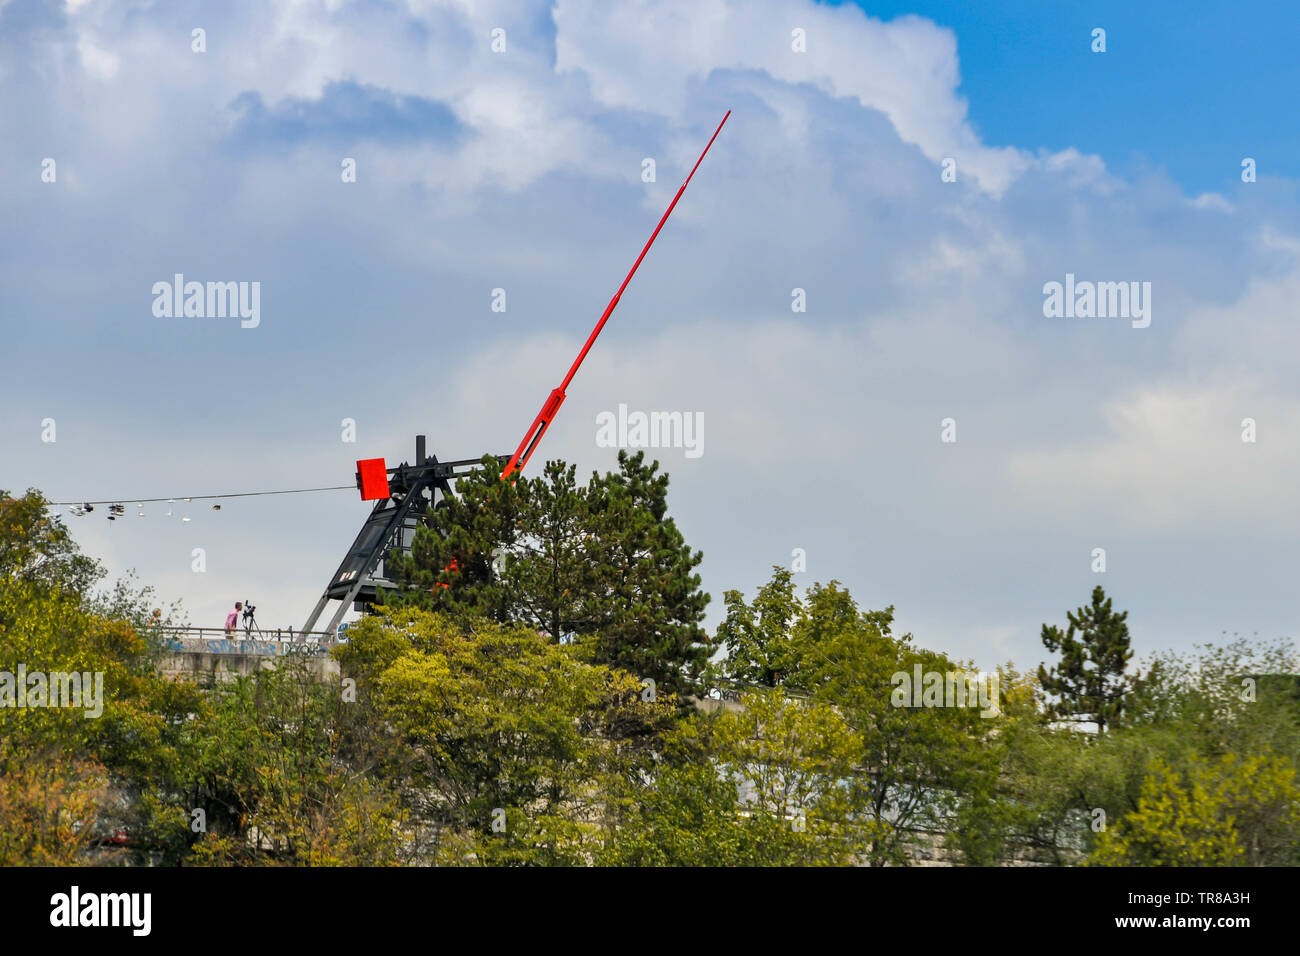 PRAGUE, CZECH REPUBLIC - JULY 2018: The Prague metronome is a working metronome in Letna Park above the city. It replaced a statue of Stalin Stock Photo